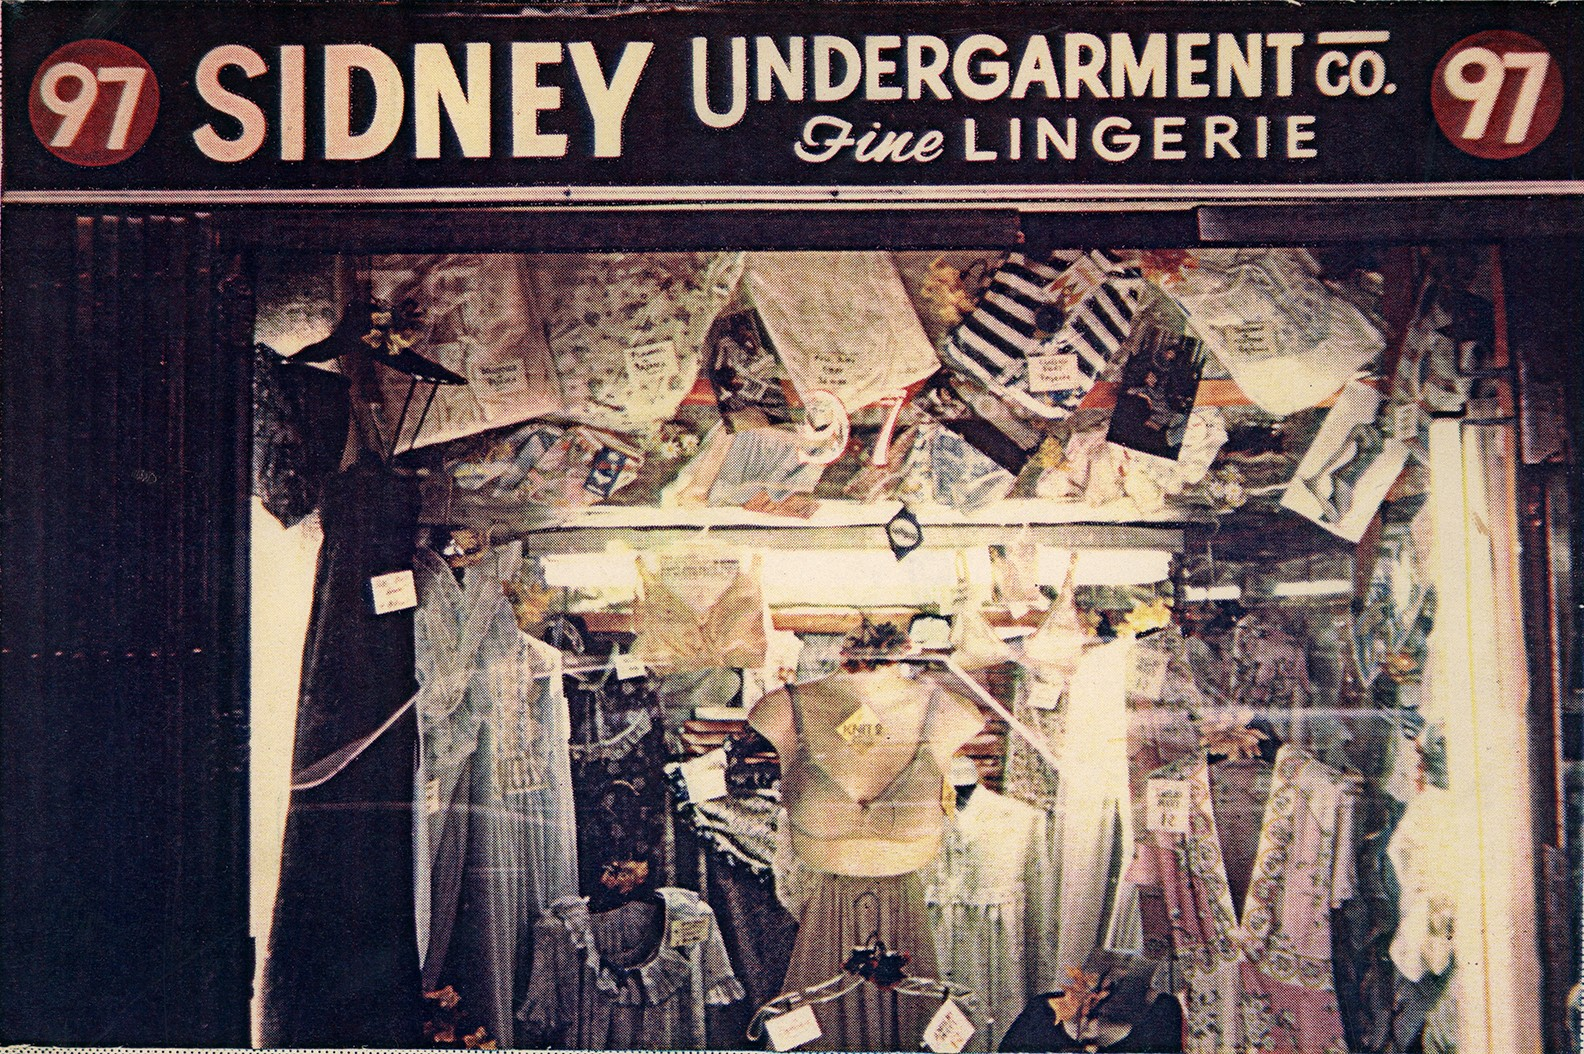 An exterior photo of the Sidney Undergarment Company storefront at 97 Orchard